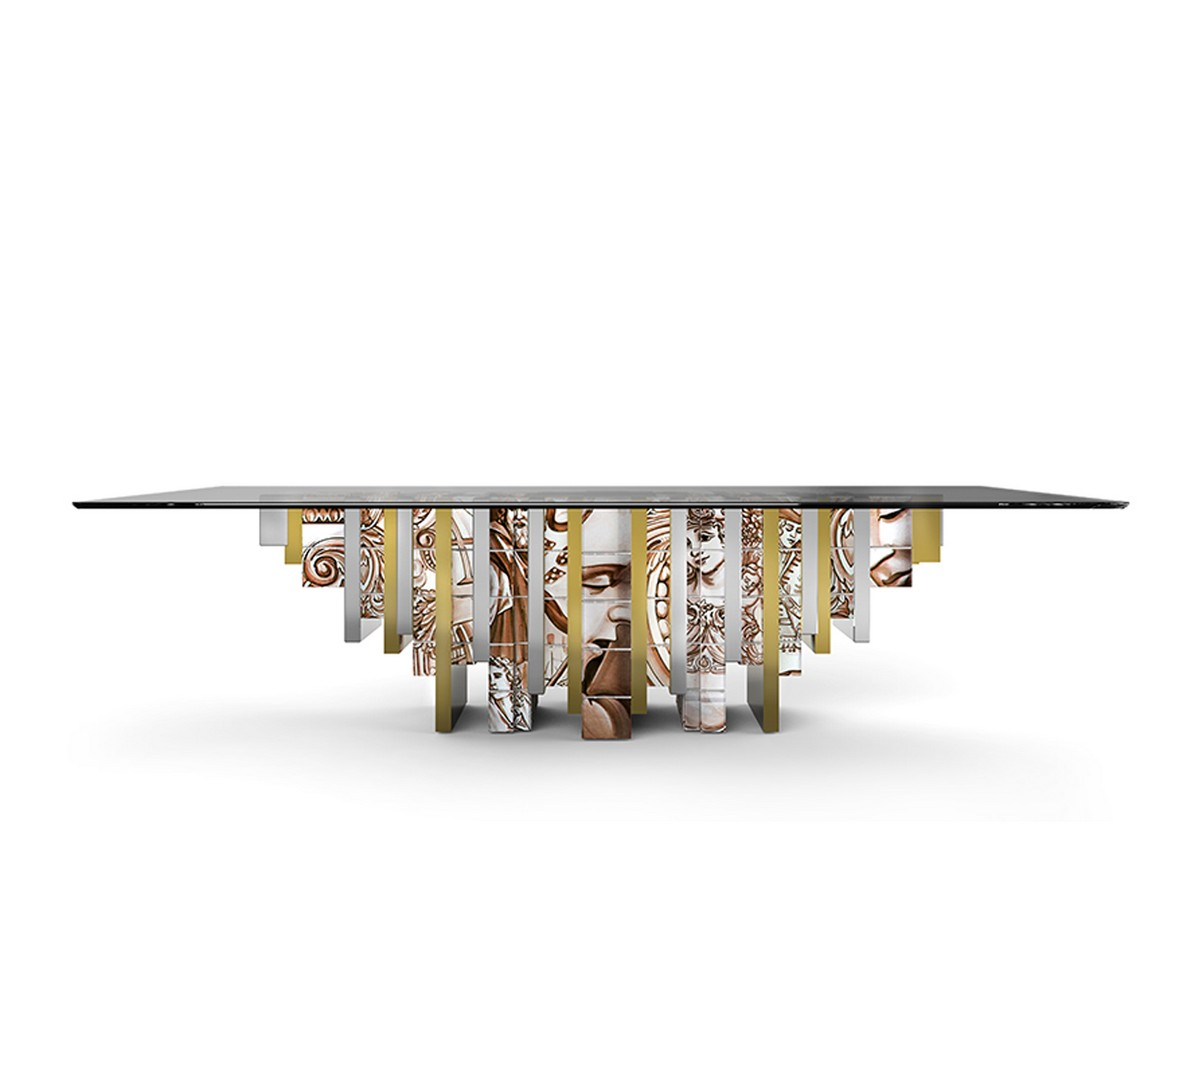 Artistic Dining Table Ideas For An Exquisite Dining Room Decor (Part II)  Artistic Dining Table Ideas For An Exquisite Dining Room Decor (Part II) bl2